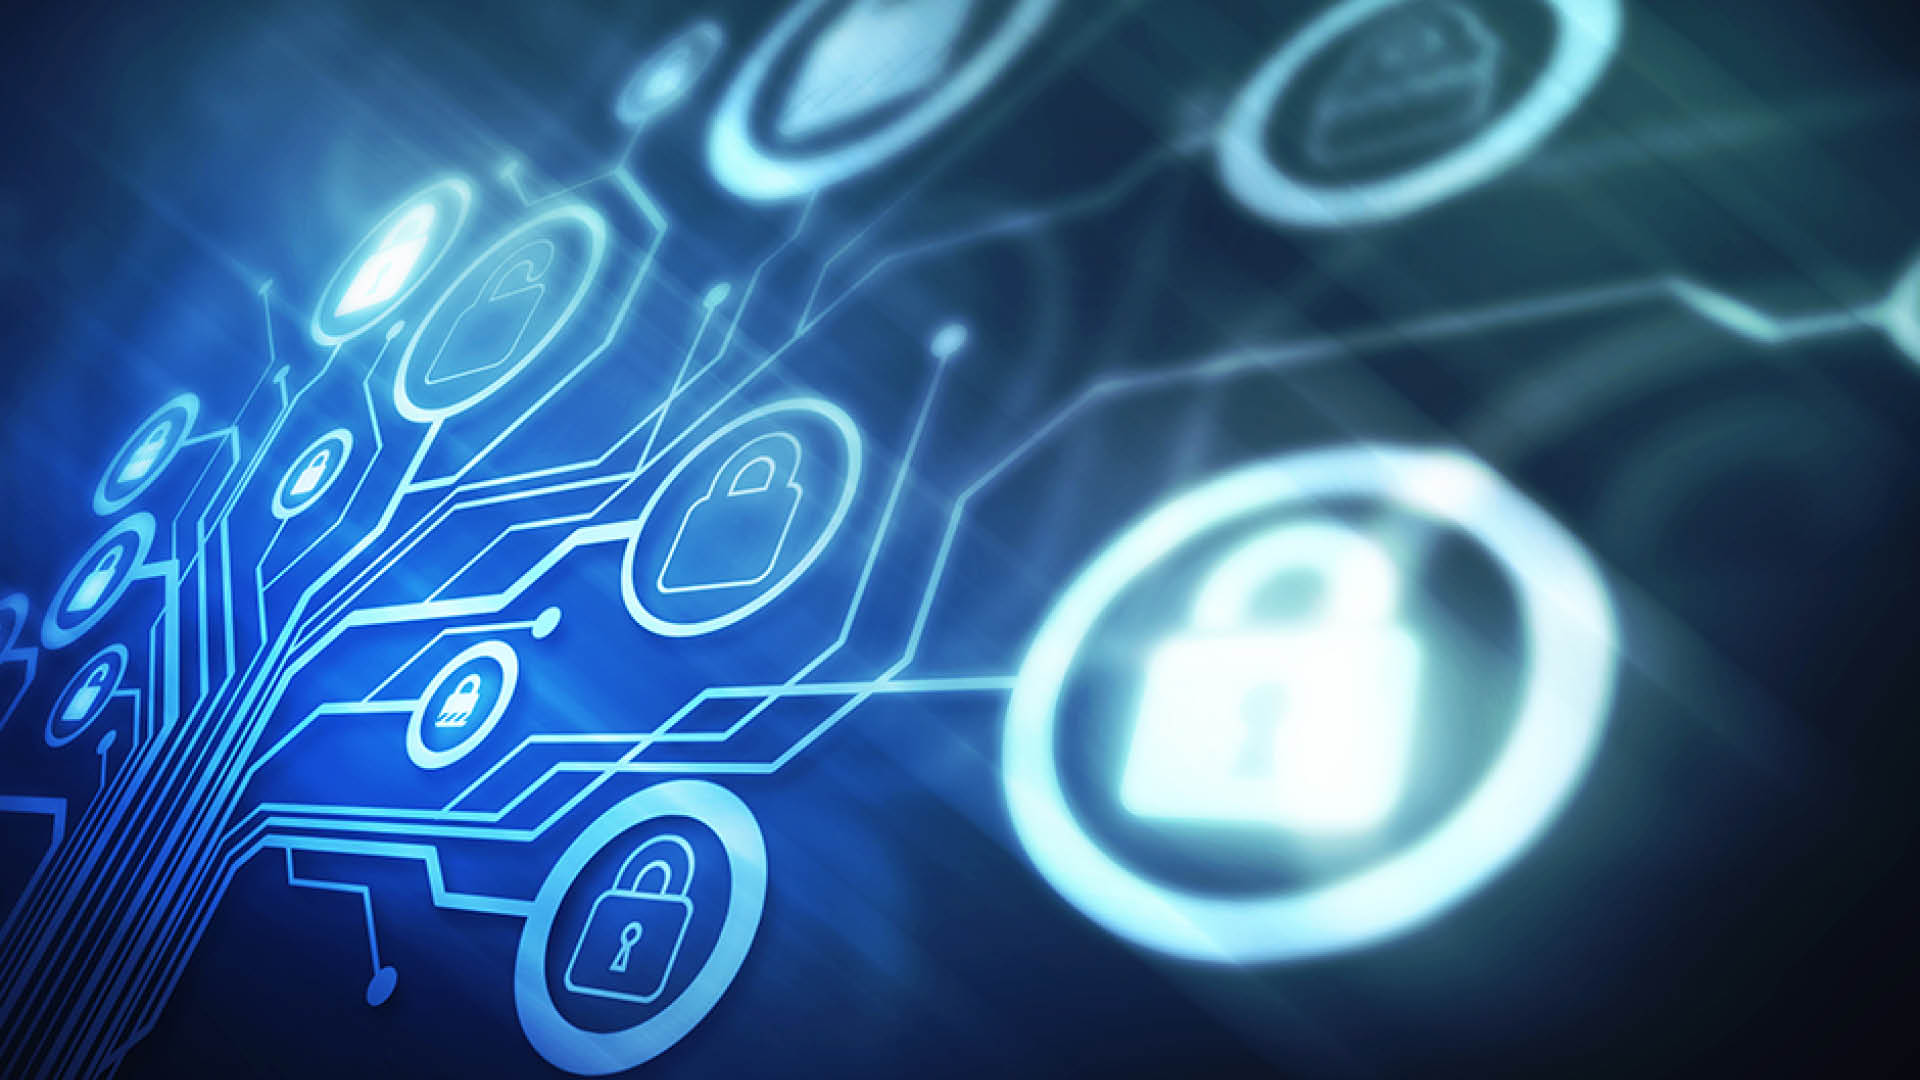 Security and privacy icon on a blue tech background